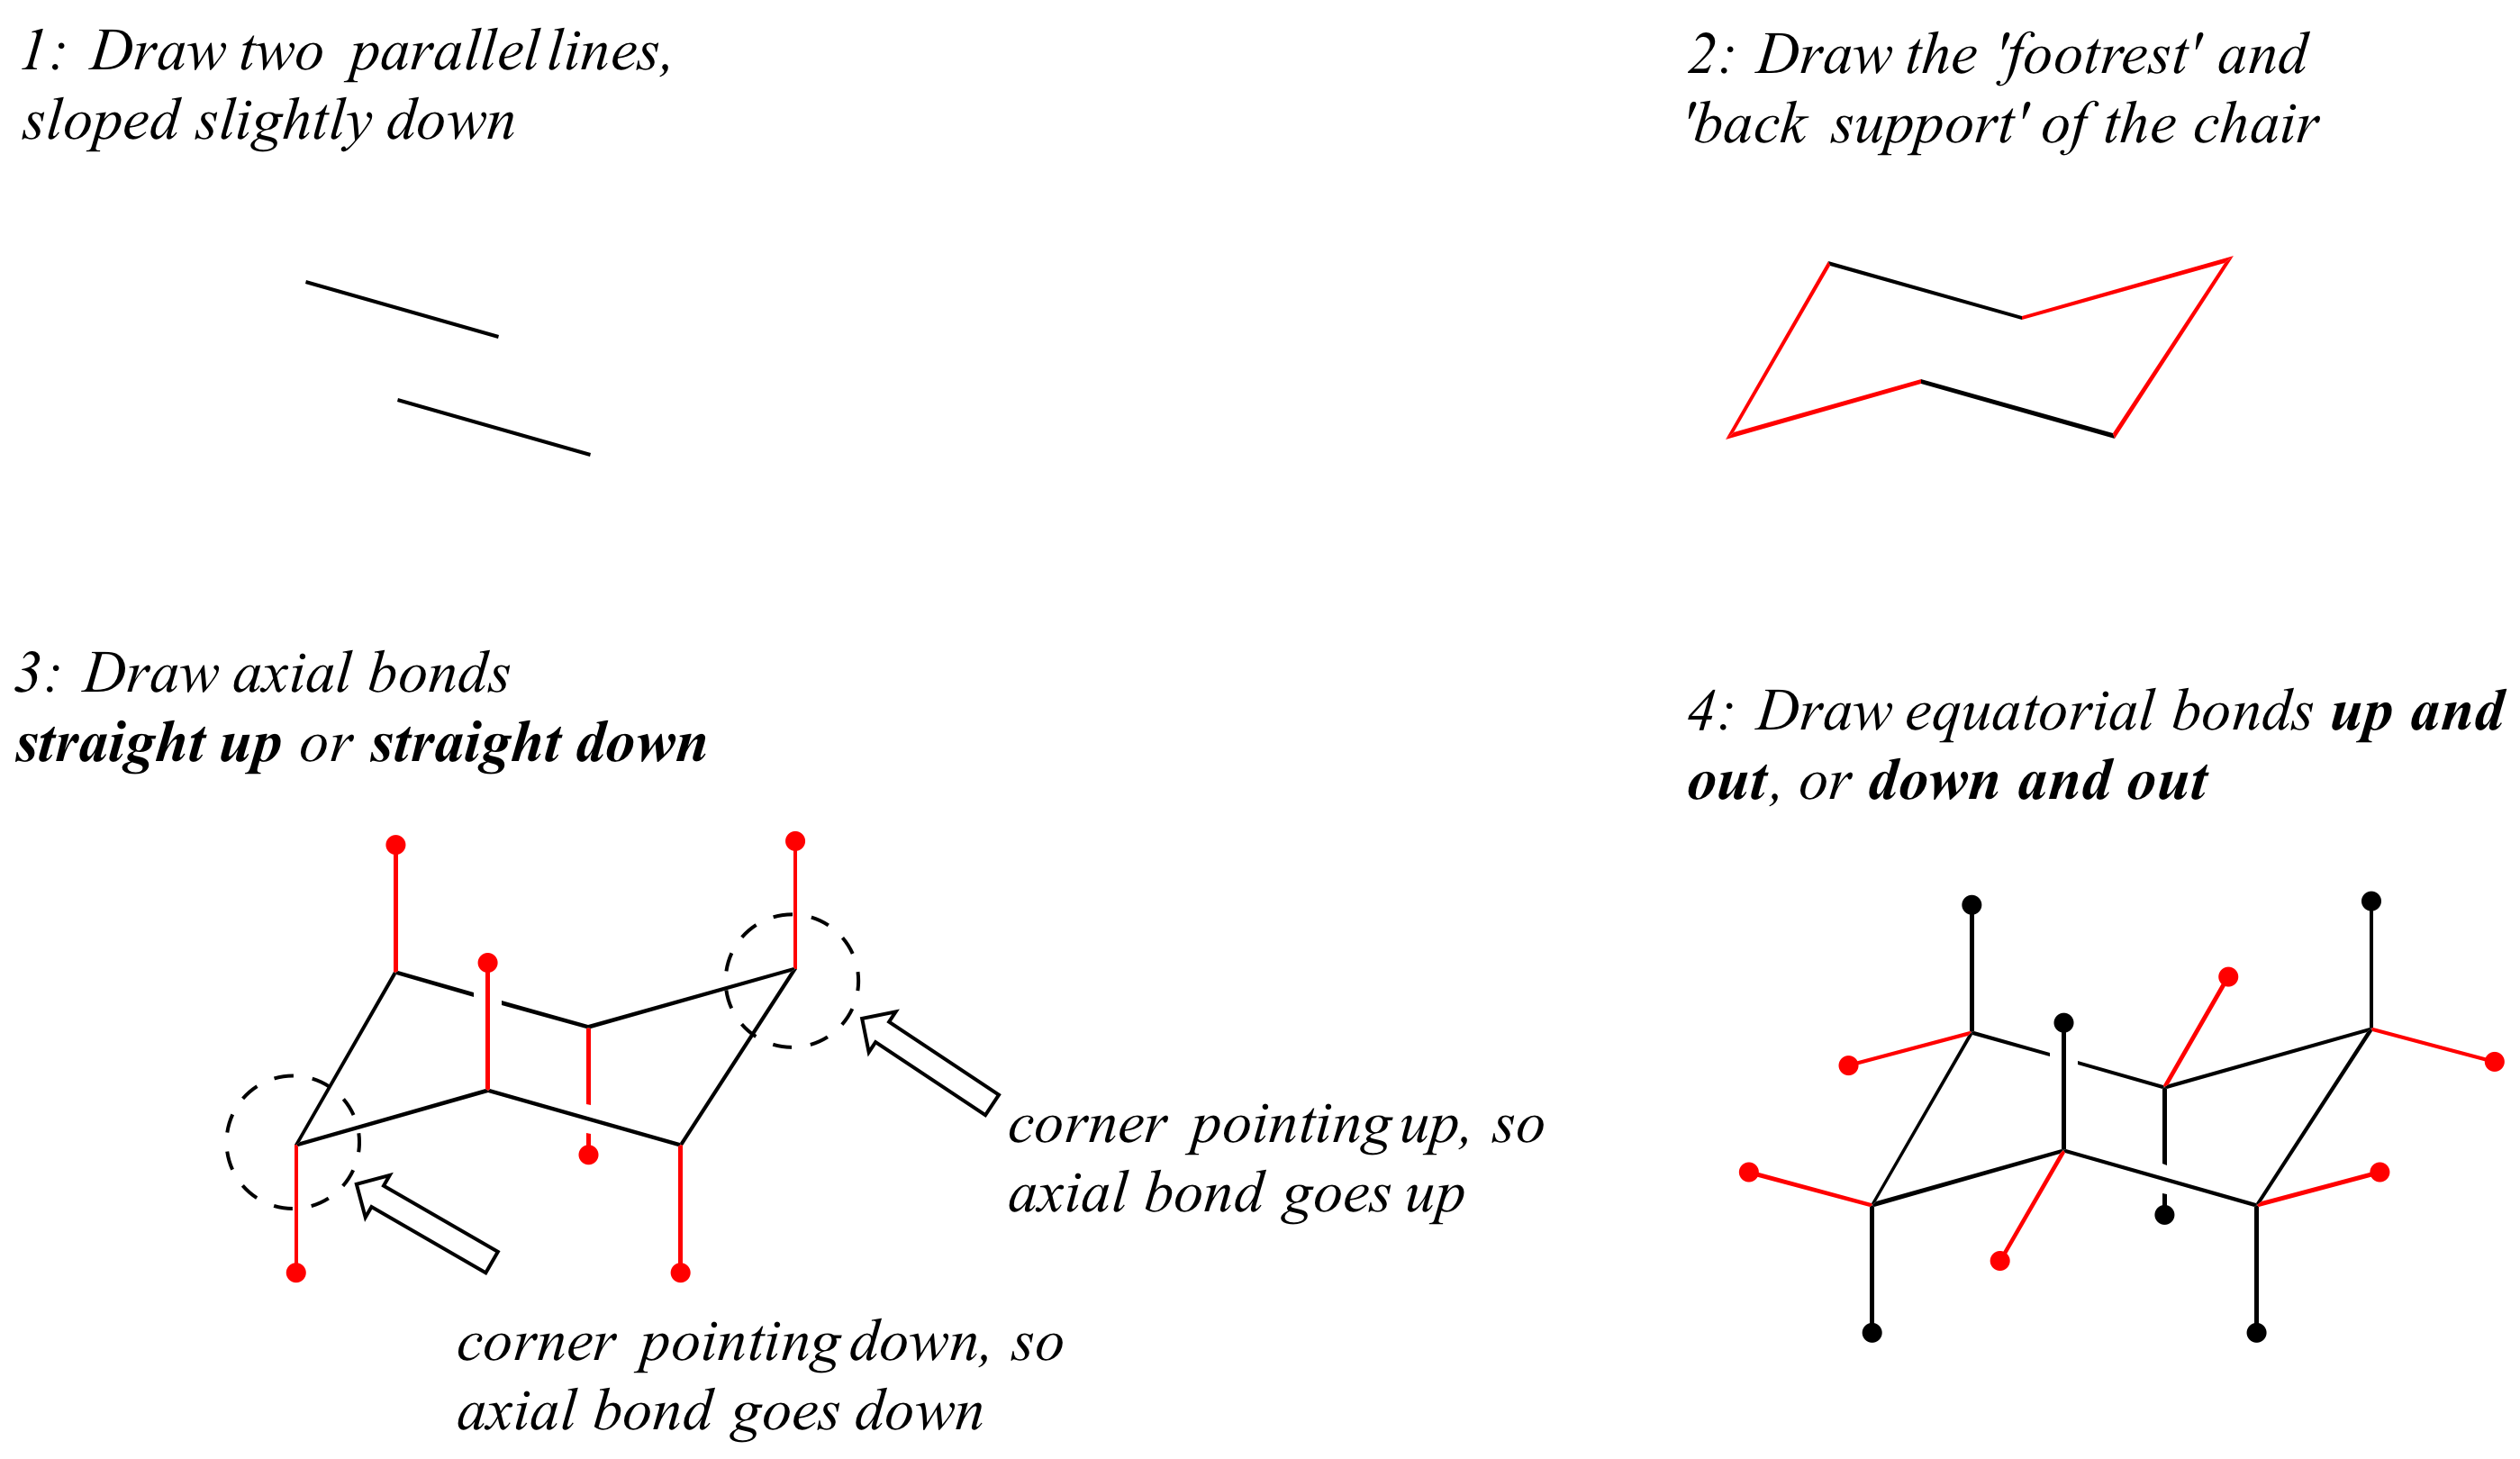 Ax drawing wedge. Conformations of cyclic